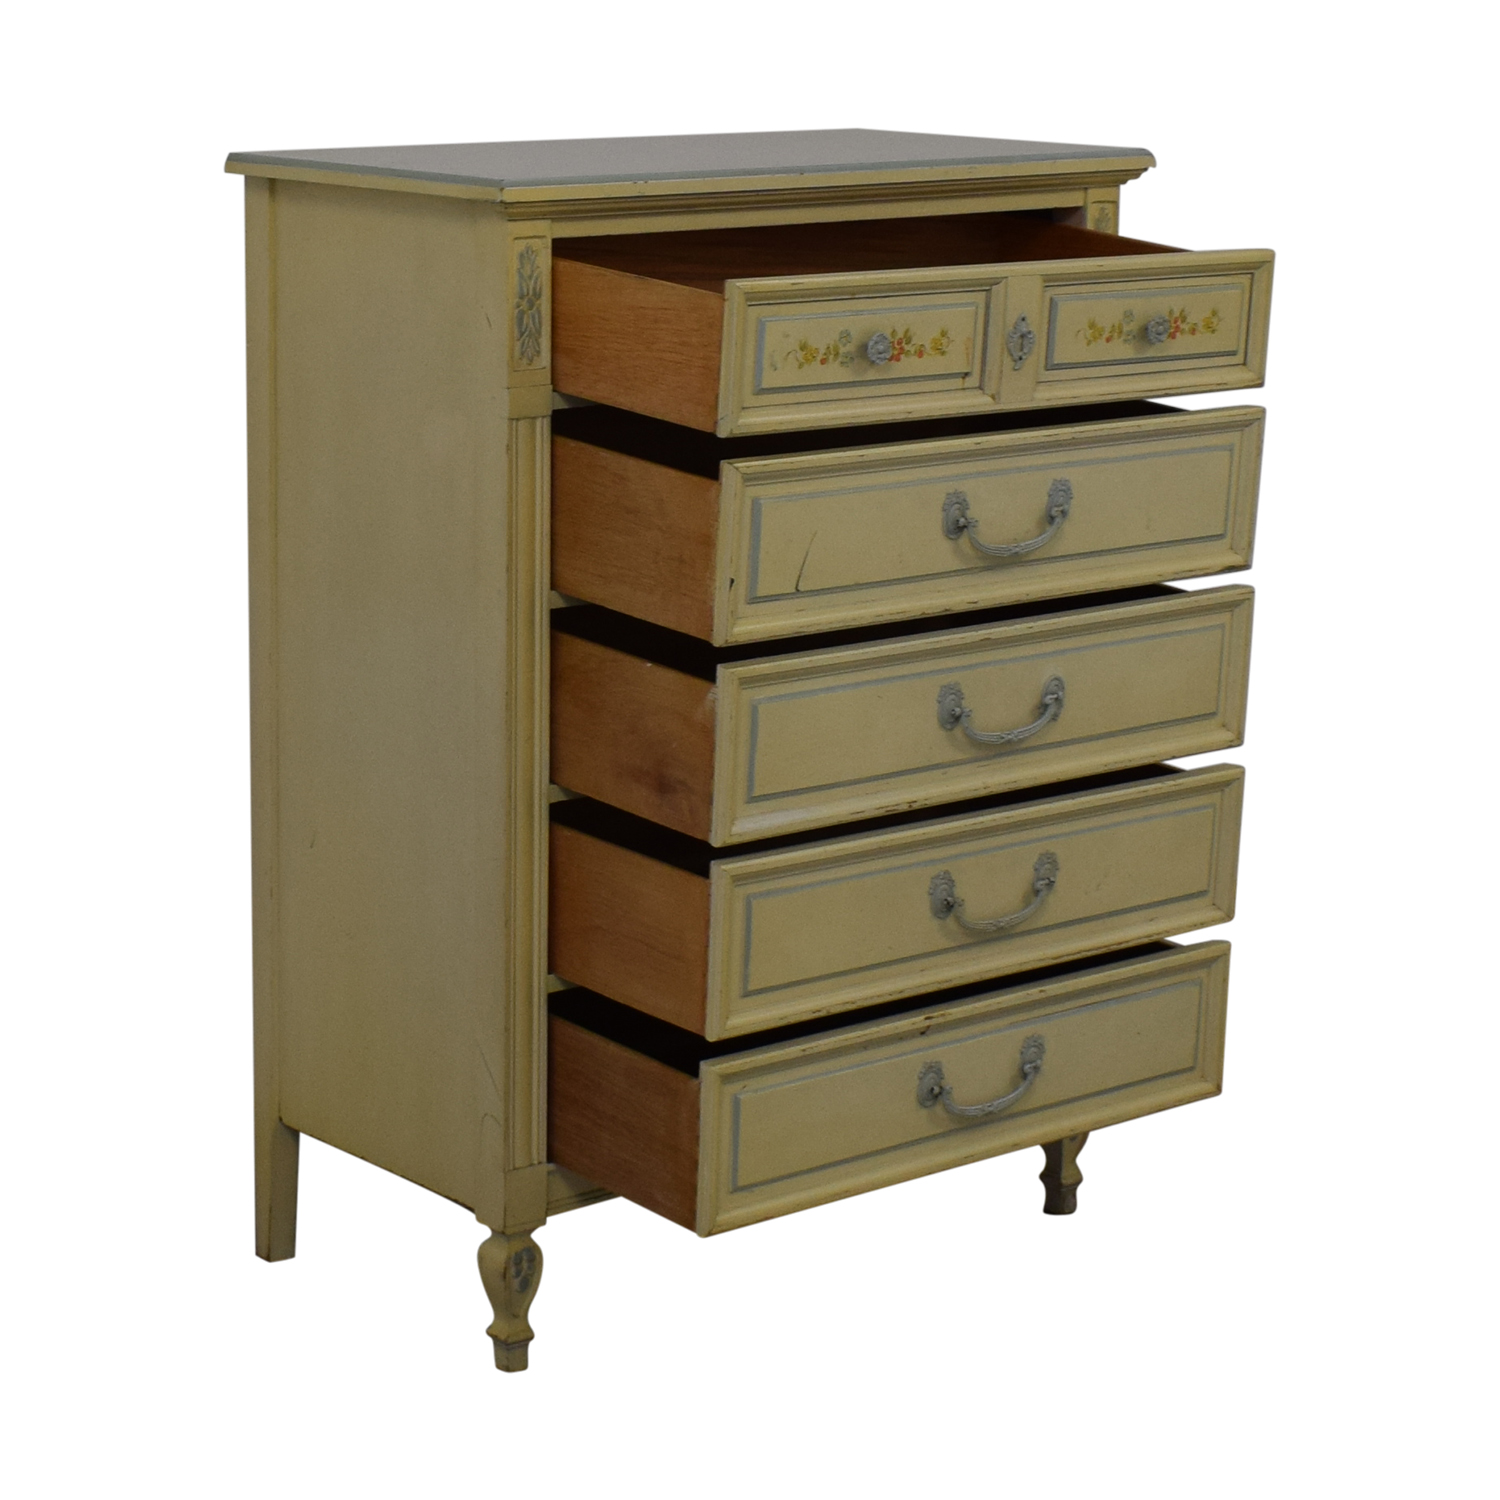 Dixie Furniture Company Dixie Furniture Company Victorian Five-Drawer Dresser Storage